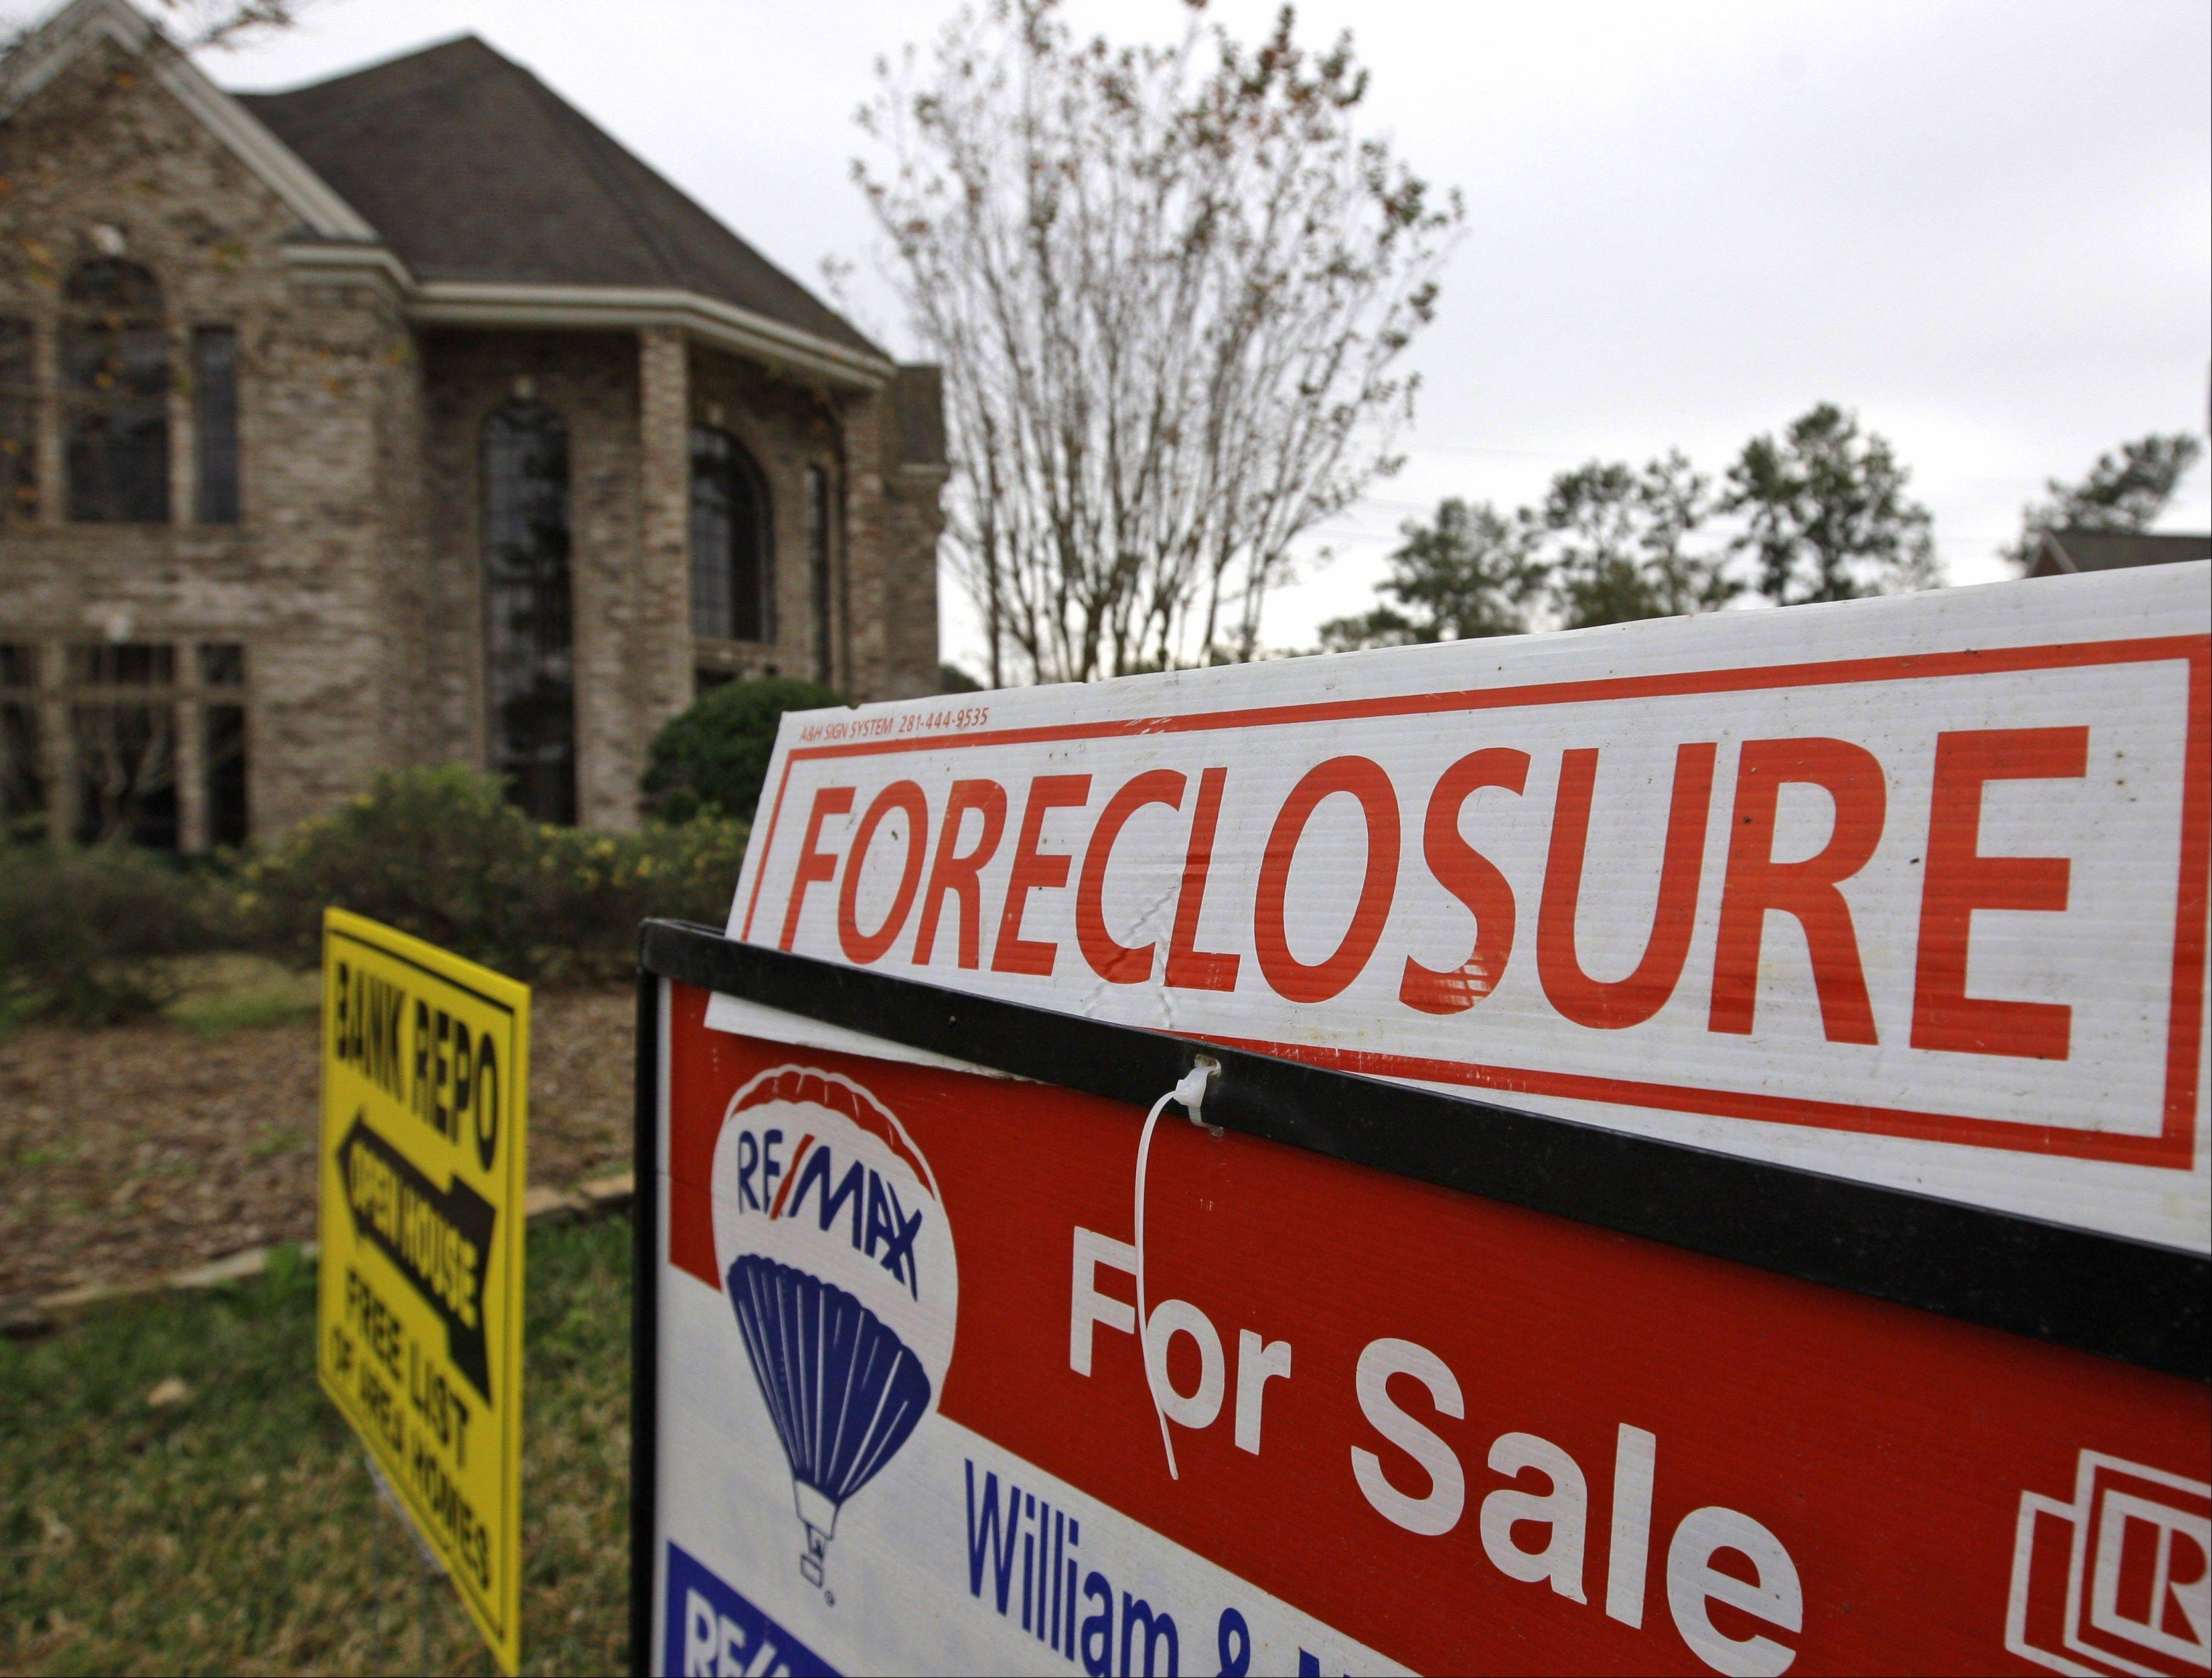 Suburban foreclosures dropped sharply in July, but experts attribute much of the decrease to slower processing of foreclosure documents rather than to a healthier housing market.